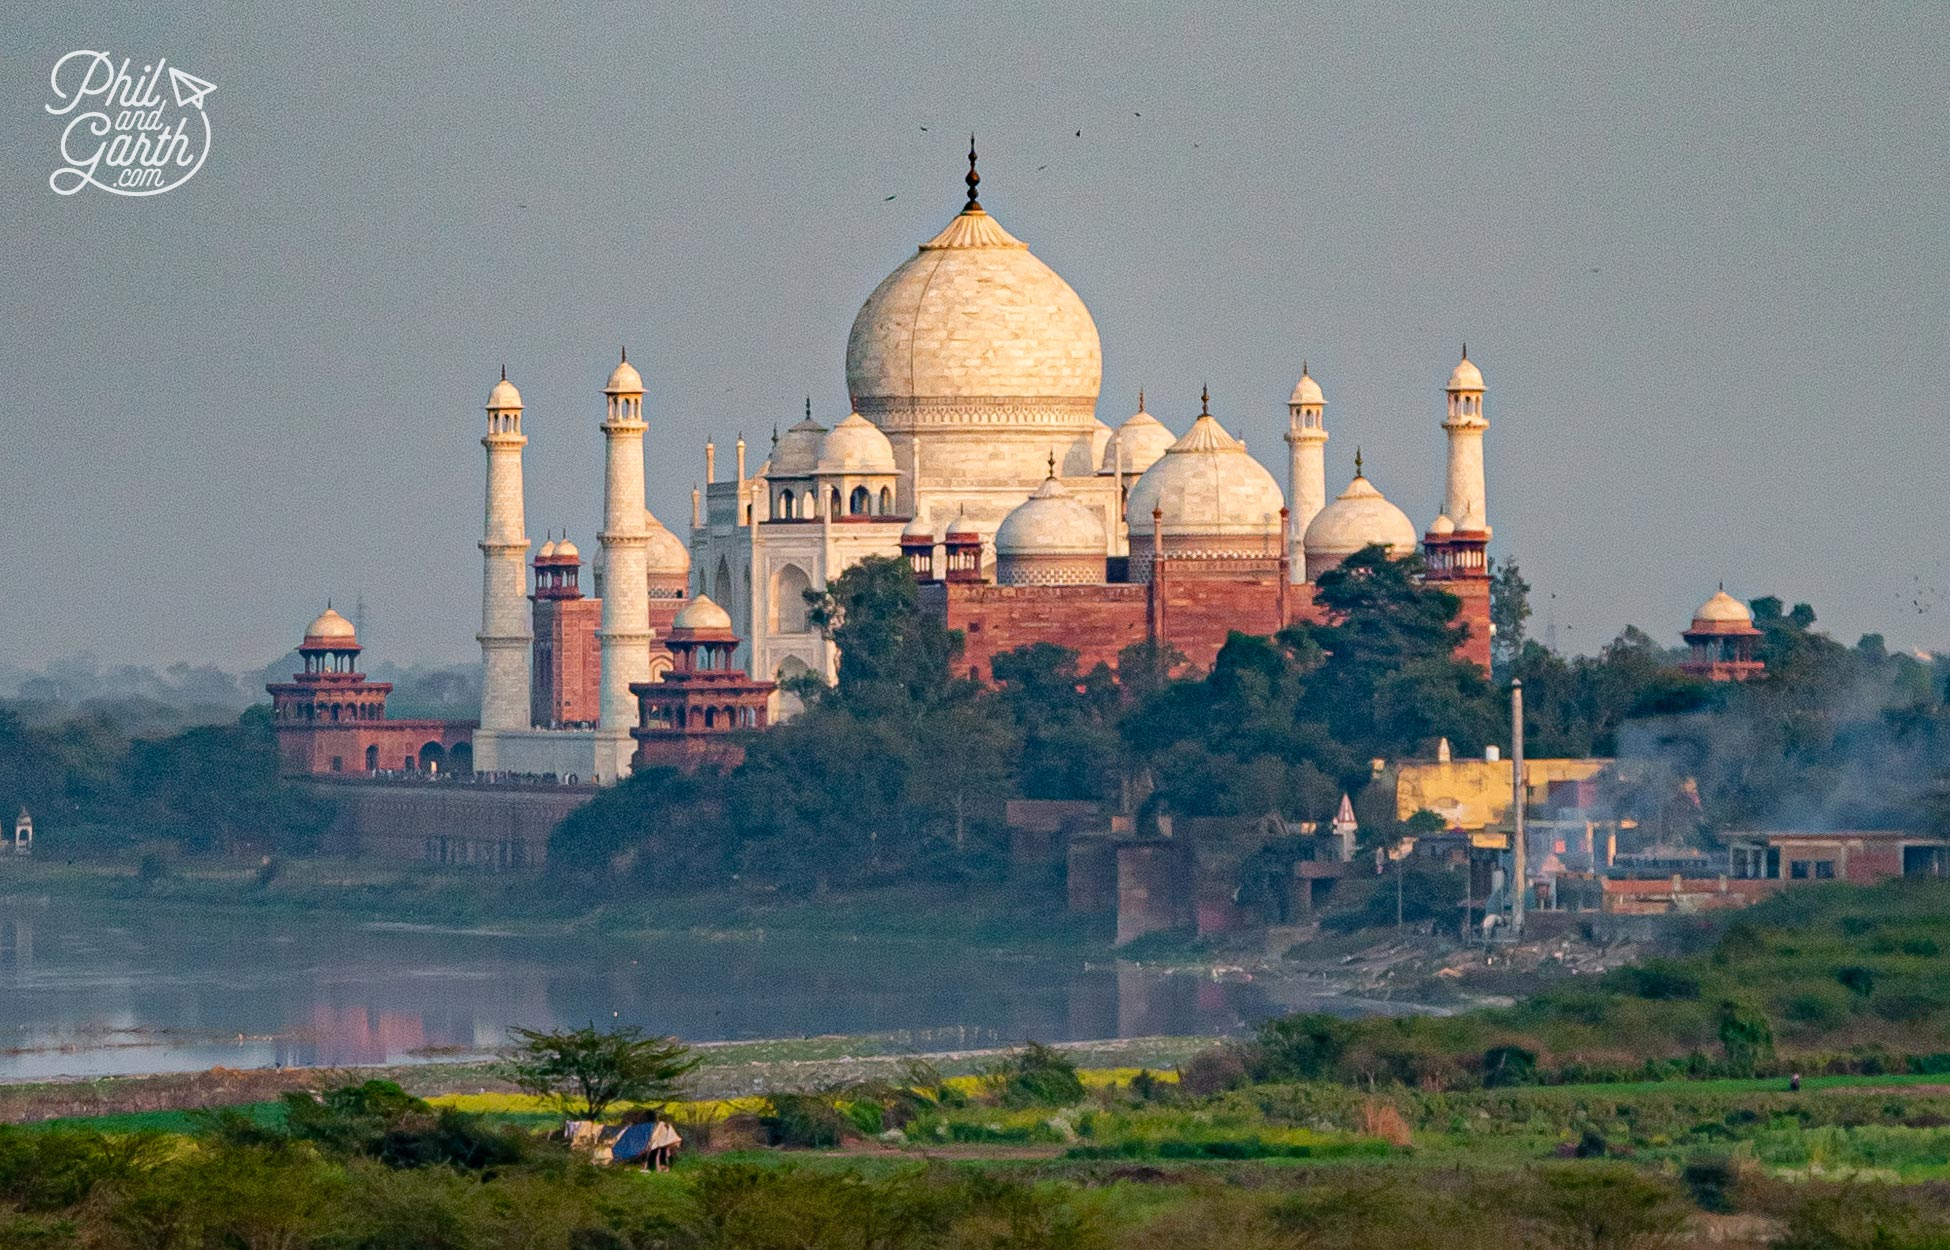 The impressive view of the Taj Mahal (photo taken with a zoom lens!)